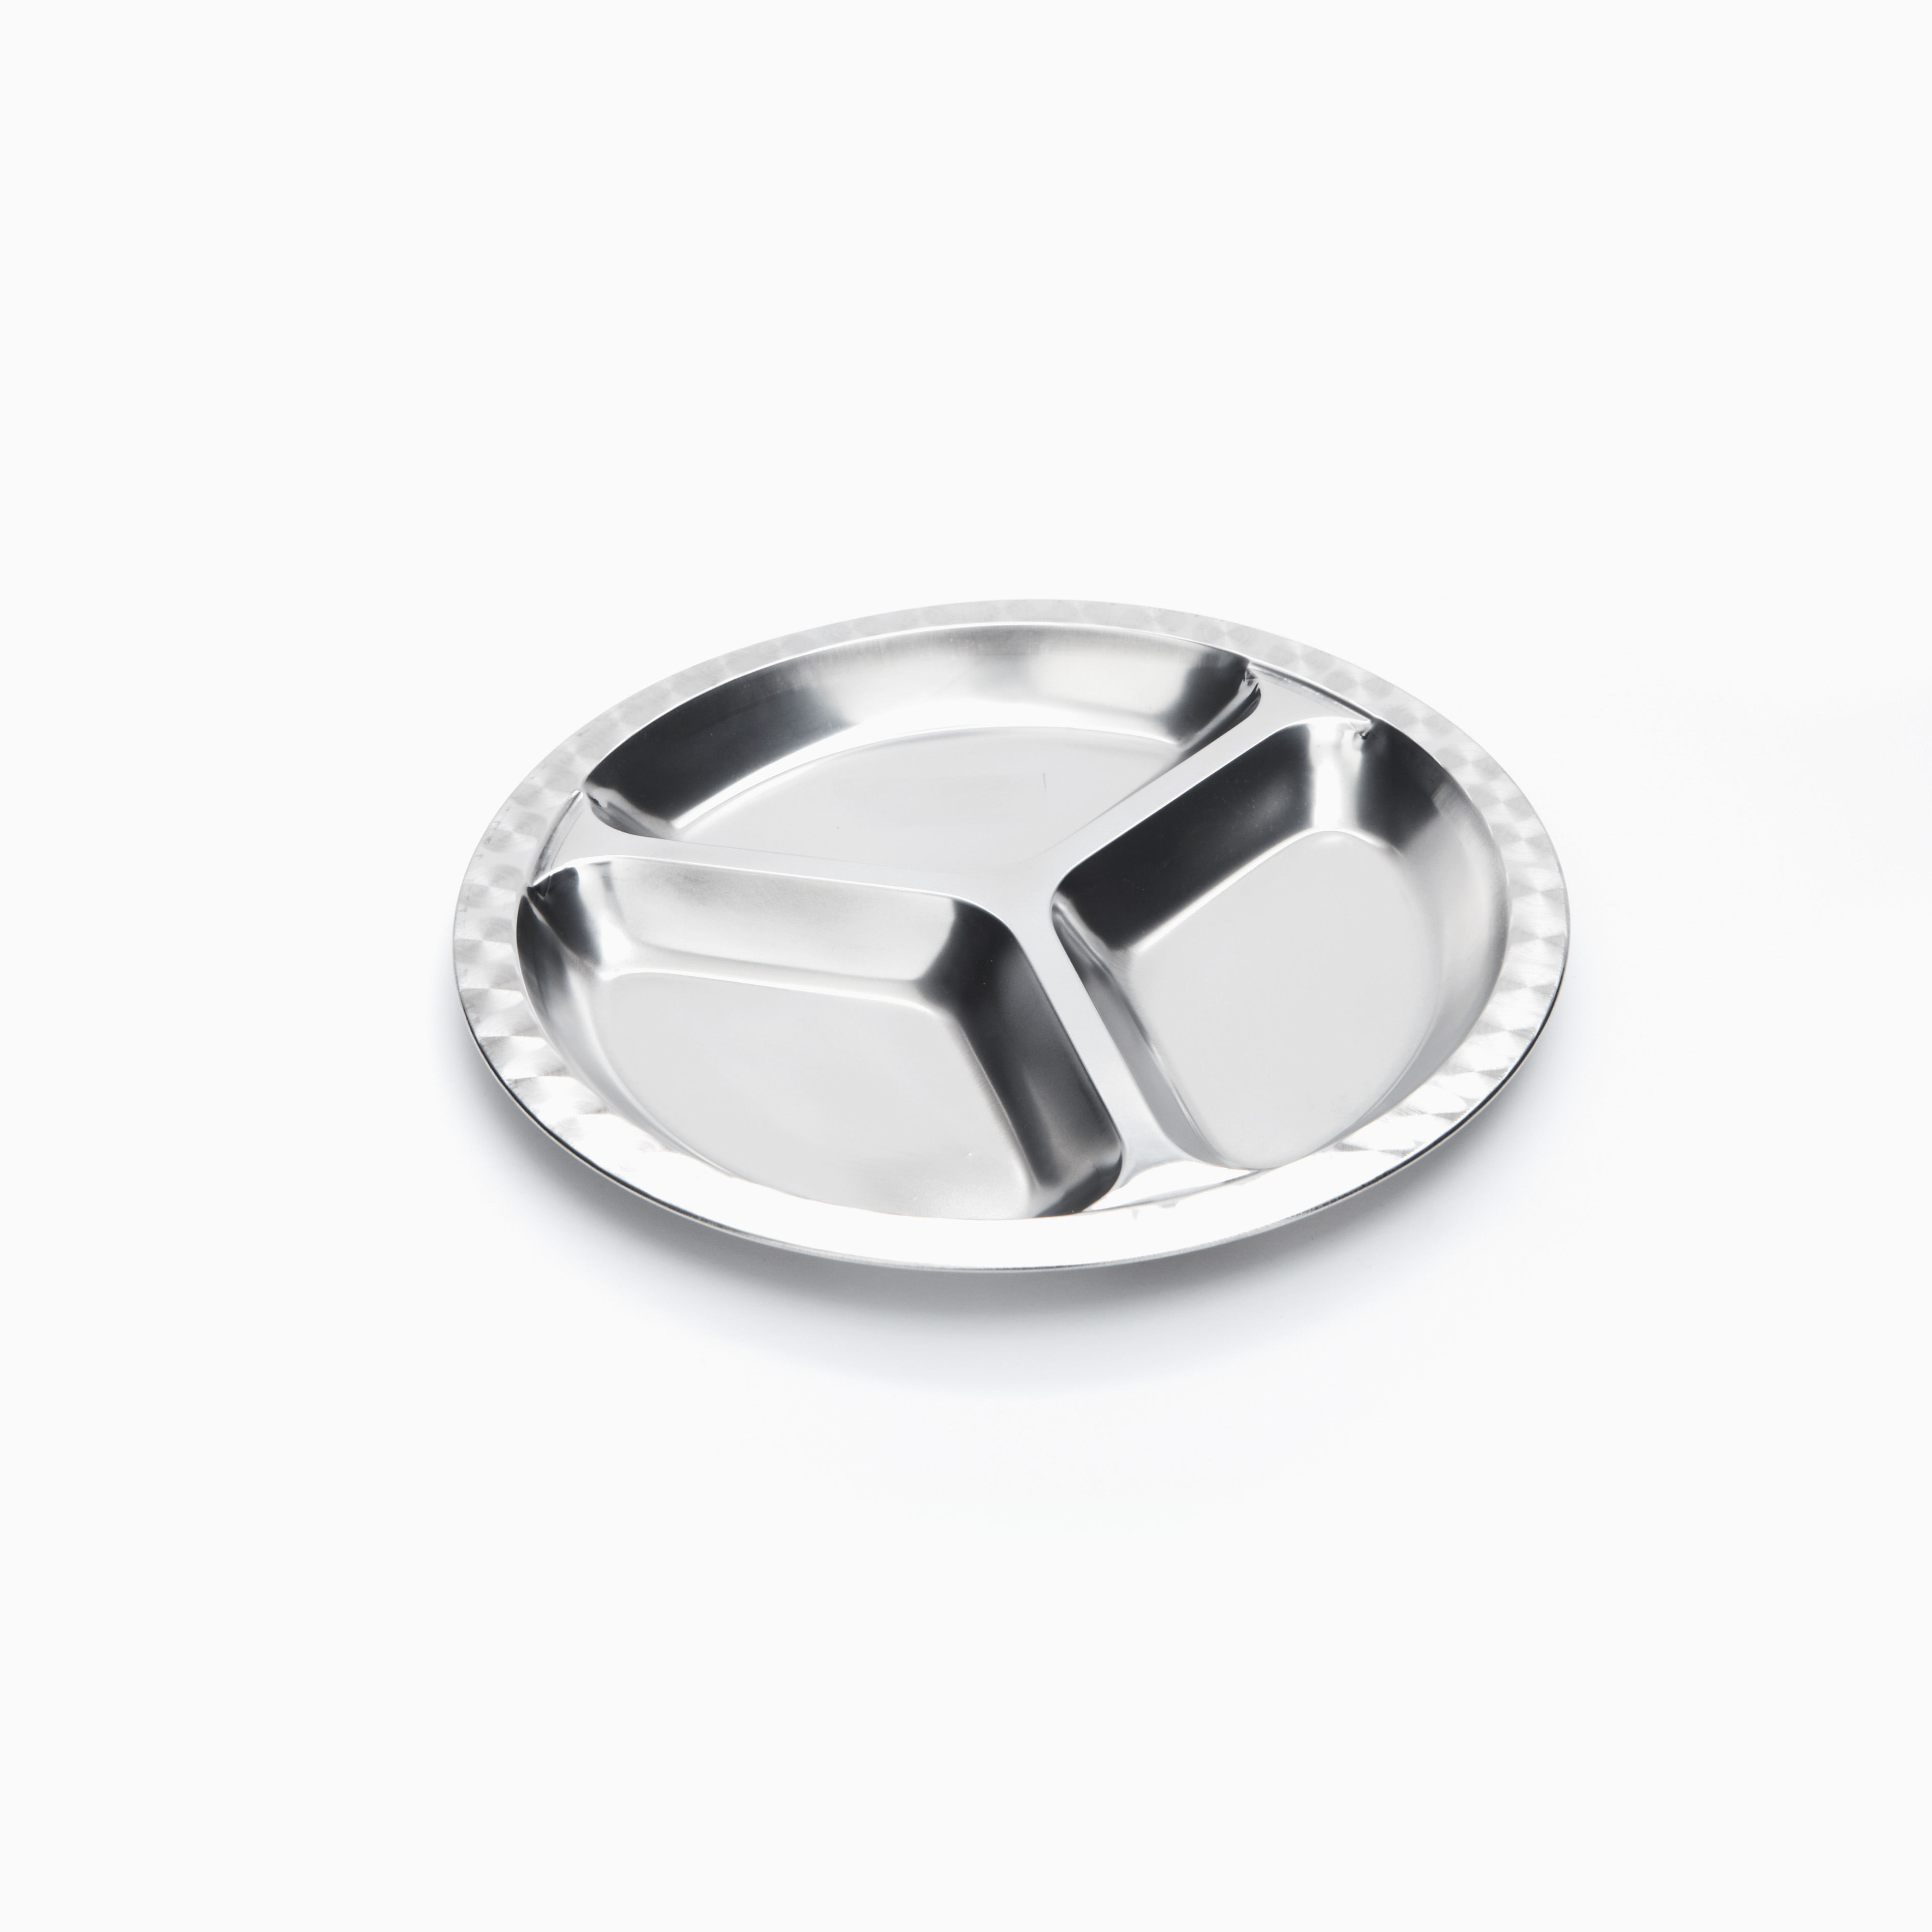 Partitioned dinner plates noplastic